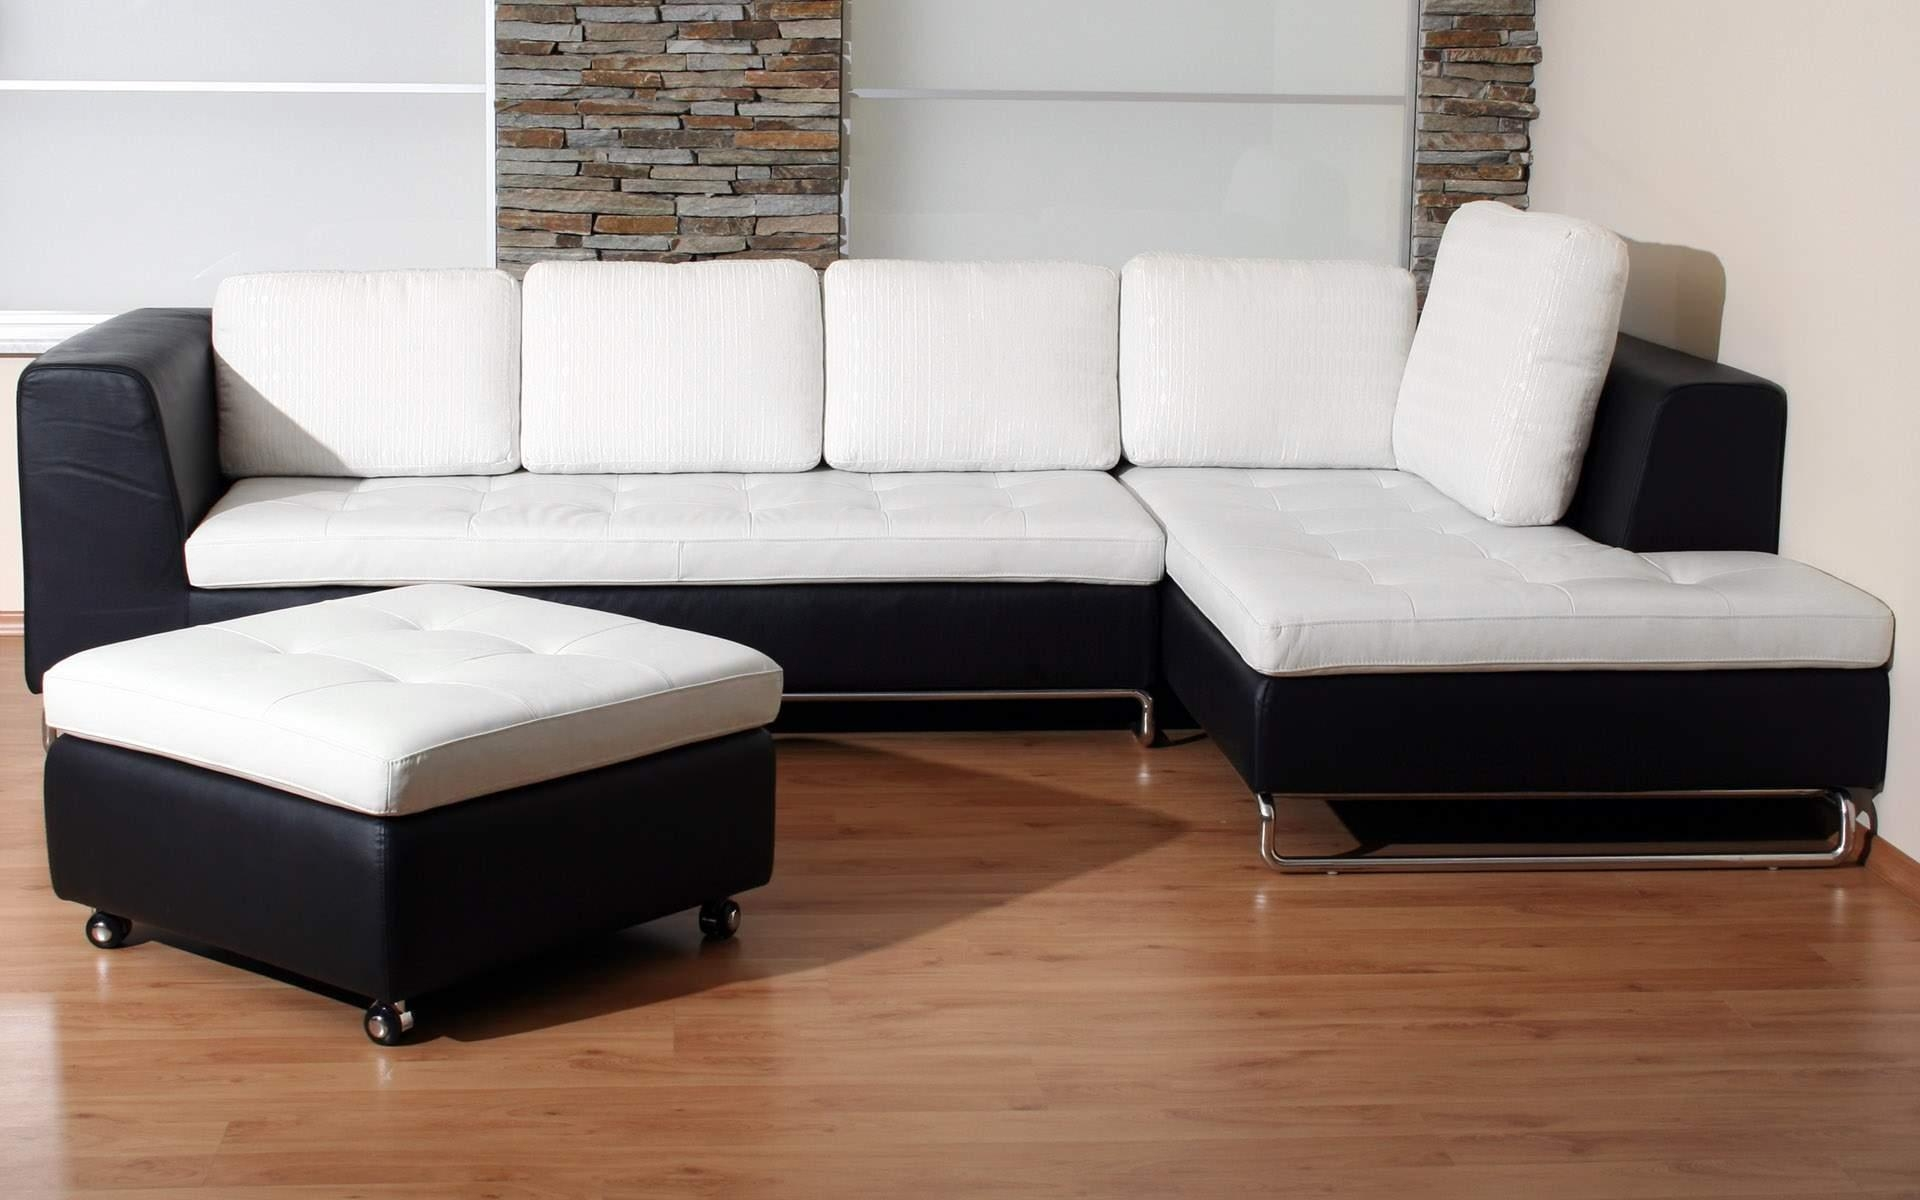 Great Black And White Sectional Sofas 21 For Restoration Hardware Inside Black And White Sectional (Image 7 of 15)